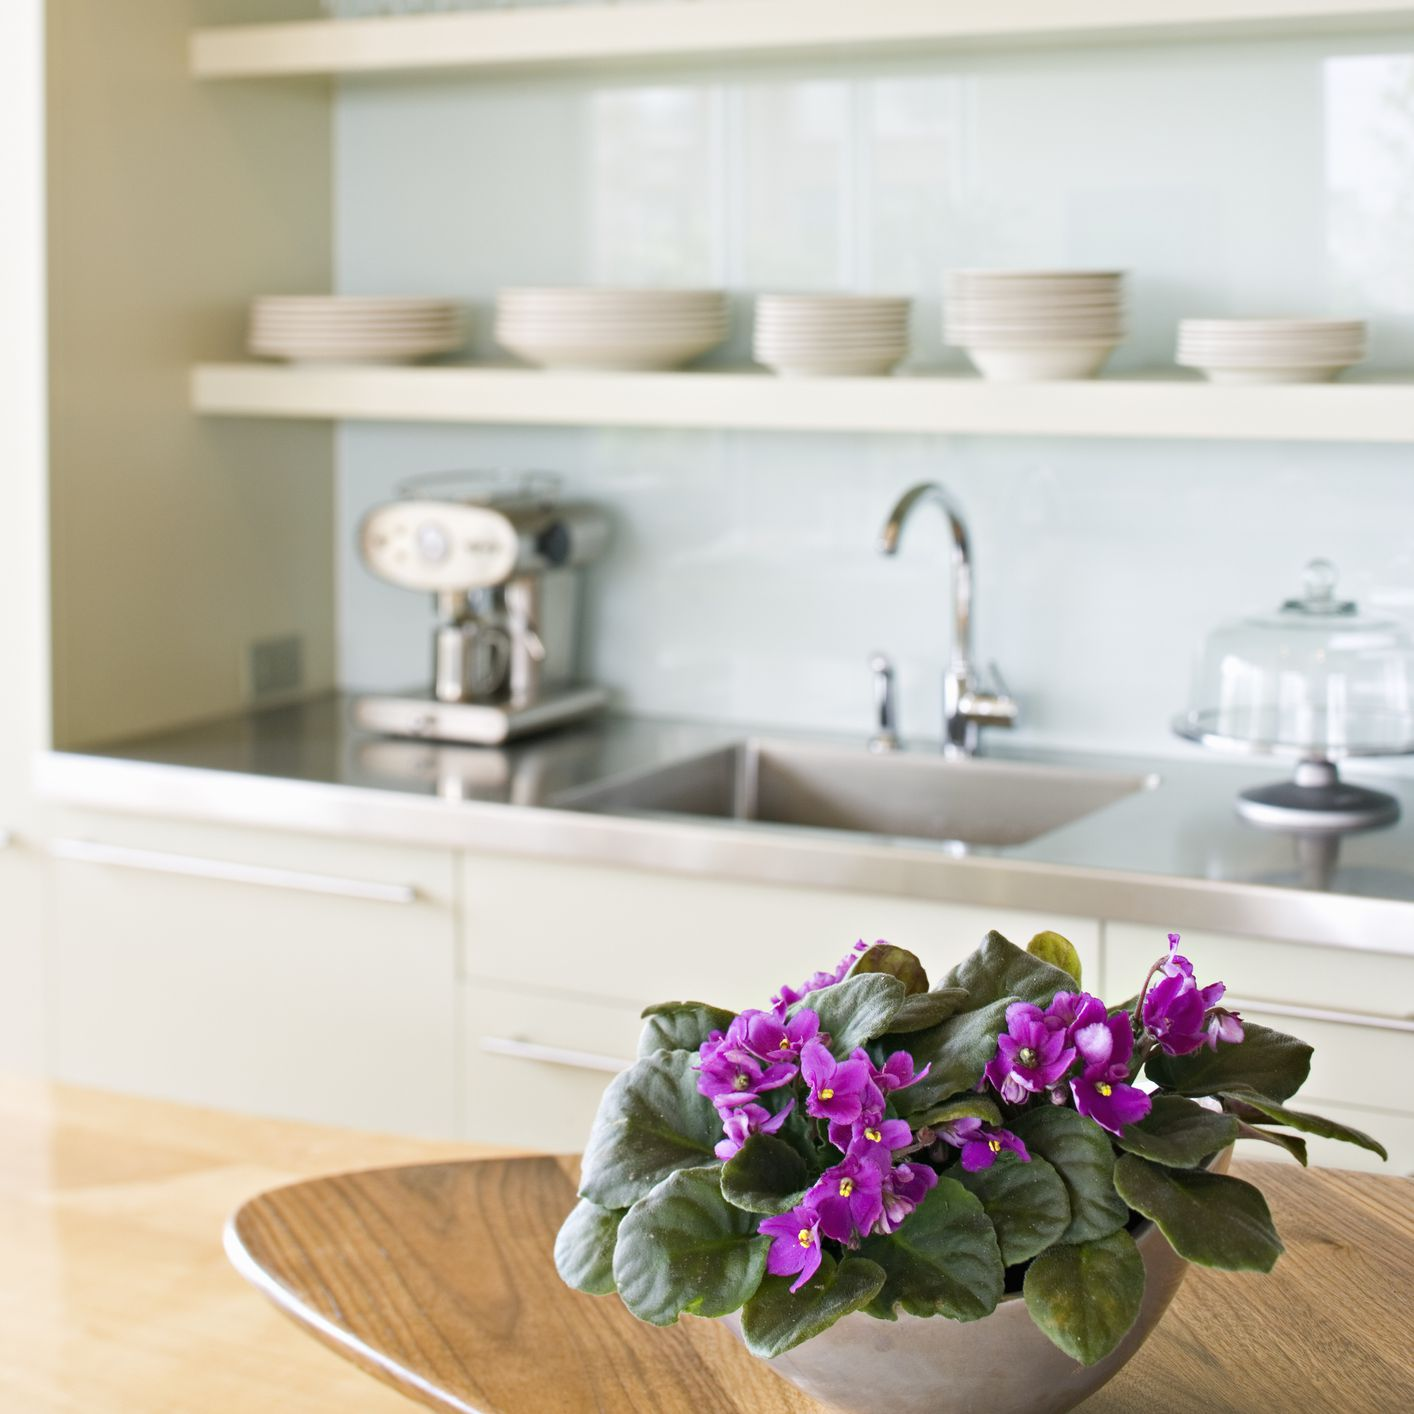 Potted African violet in a bright kitchen